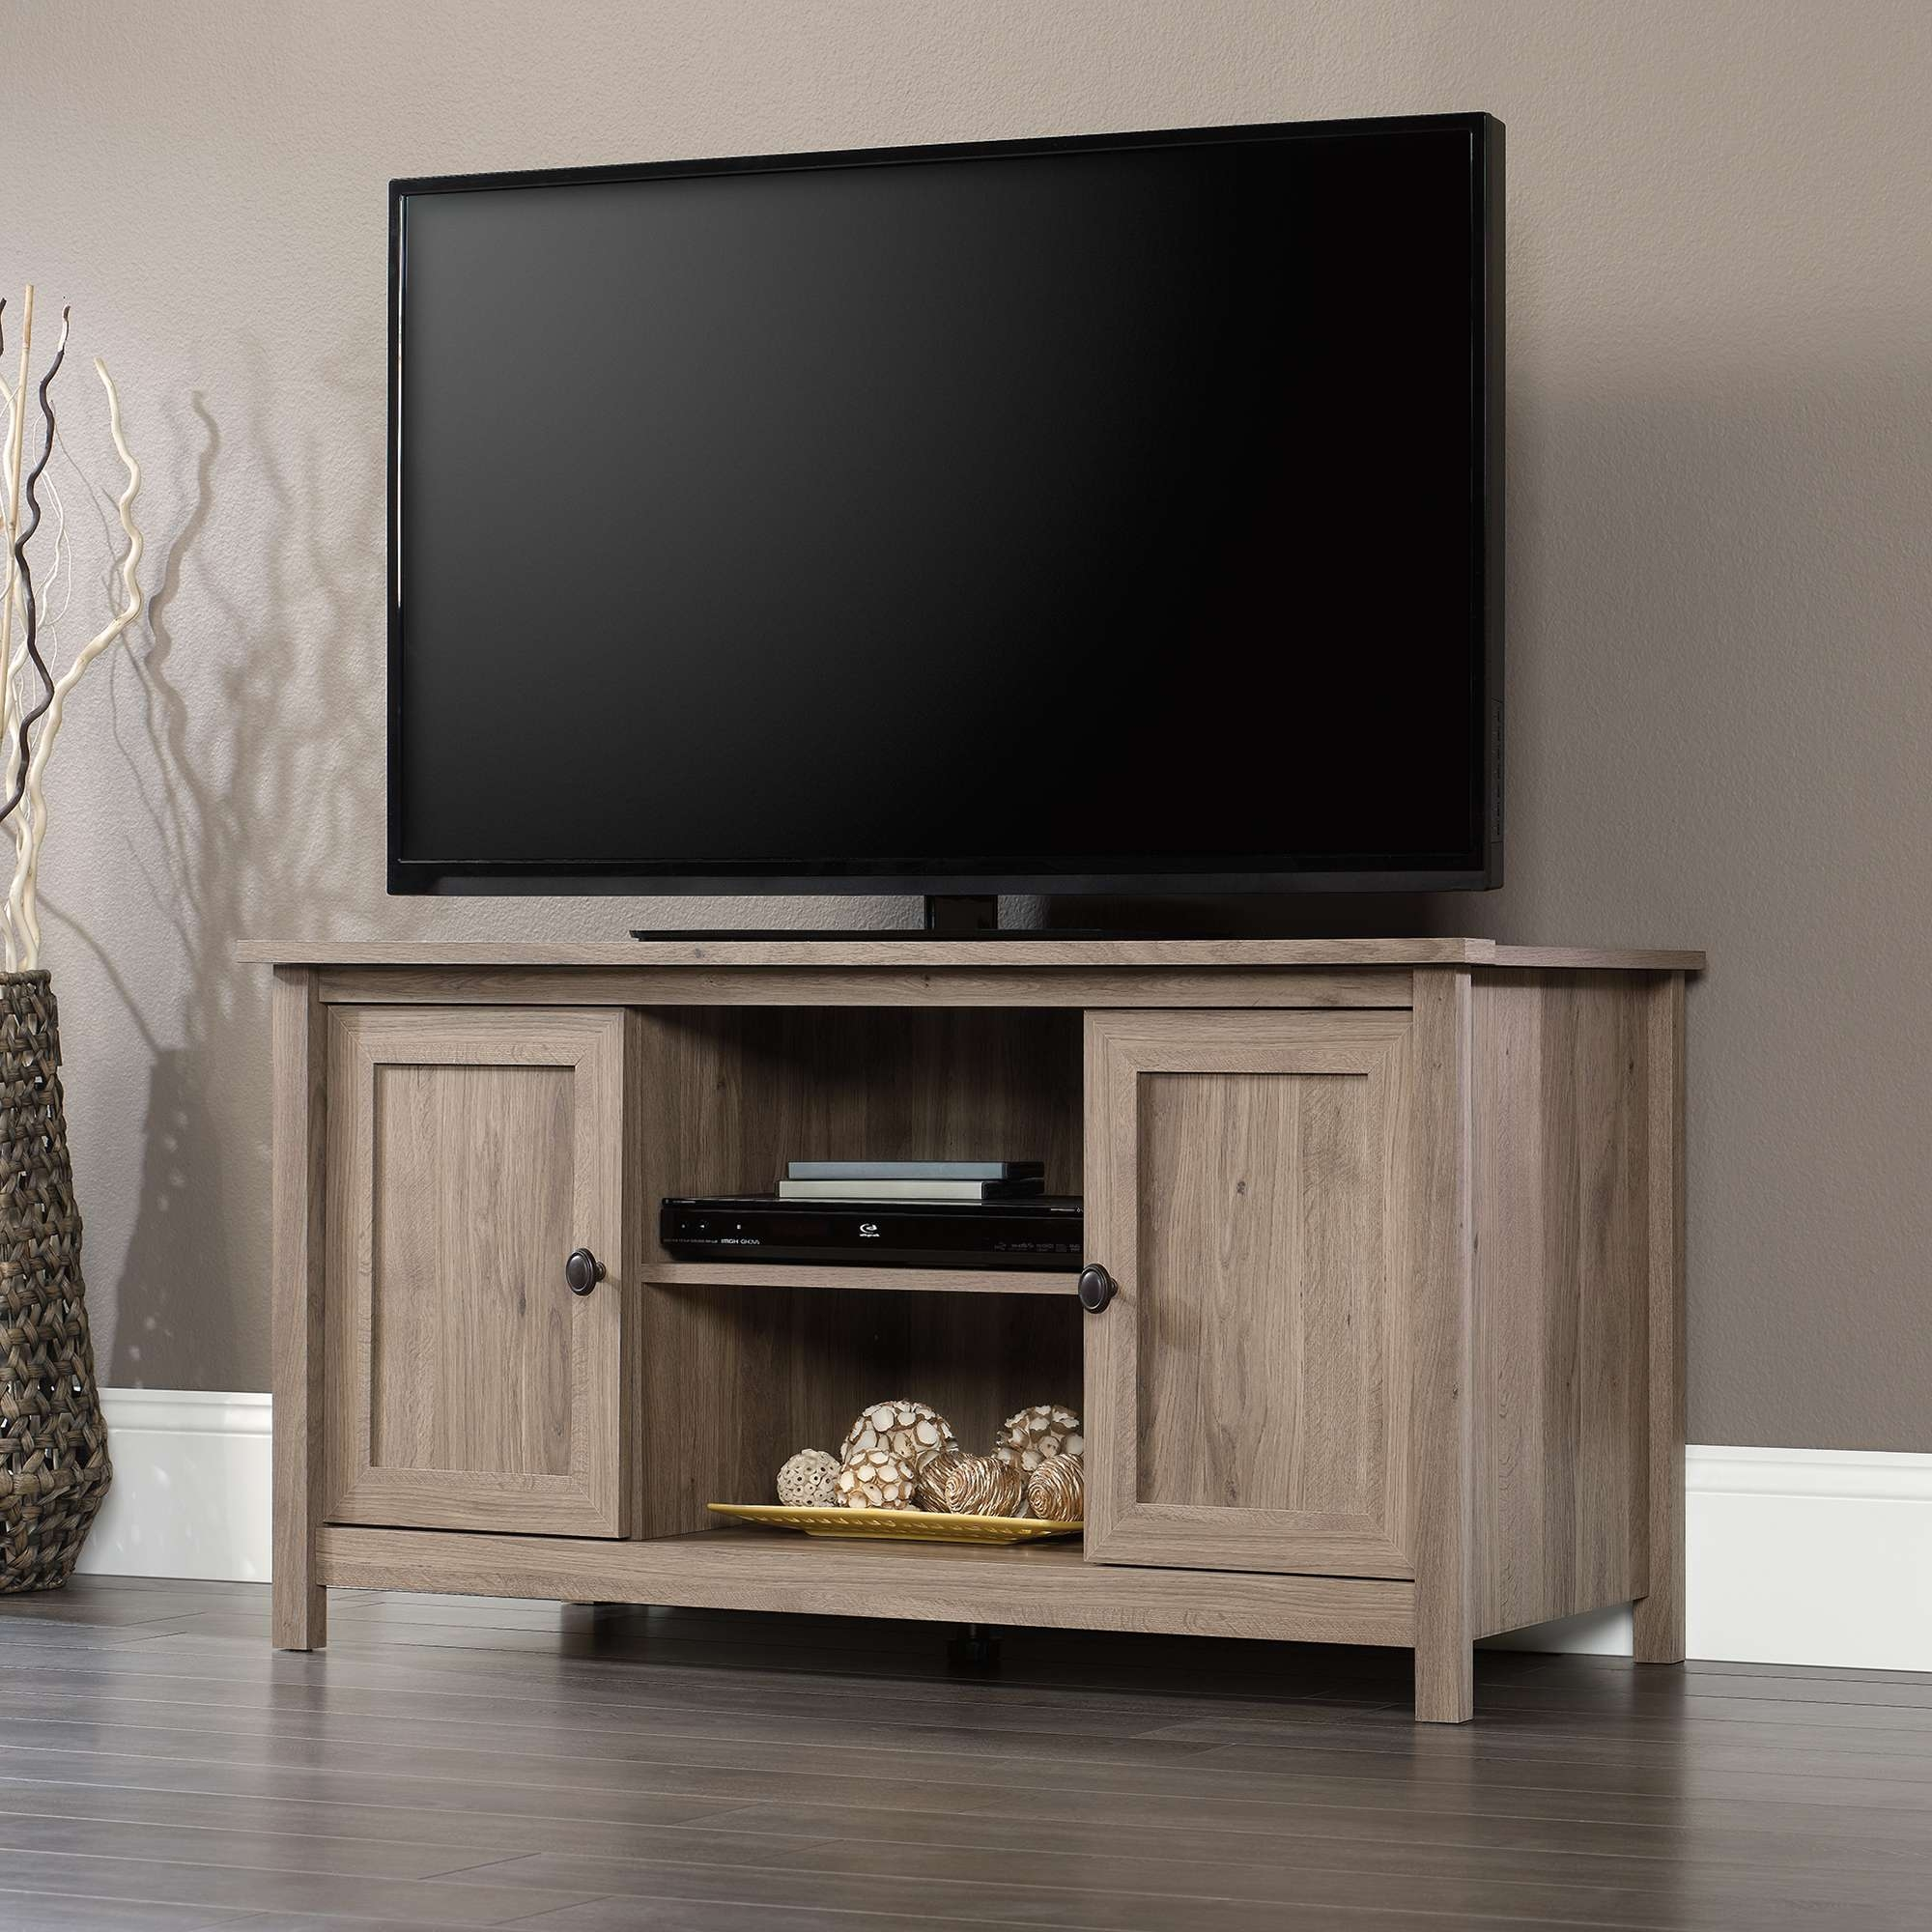 County Line | Tv Stand | 417772 | Sauder Intended For Oak Tv Stands Furniture (View 3 of 15)